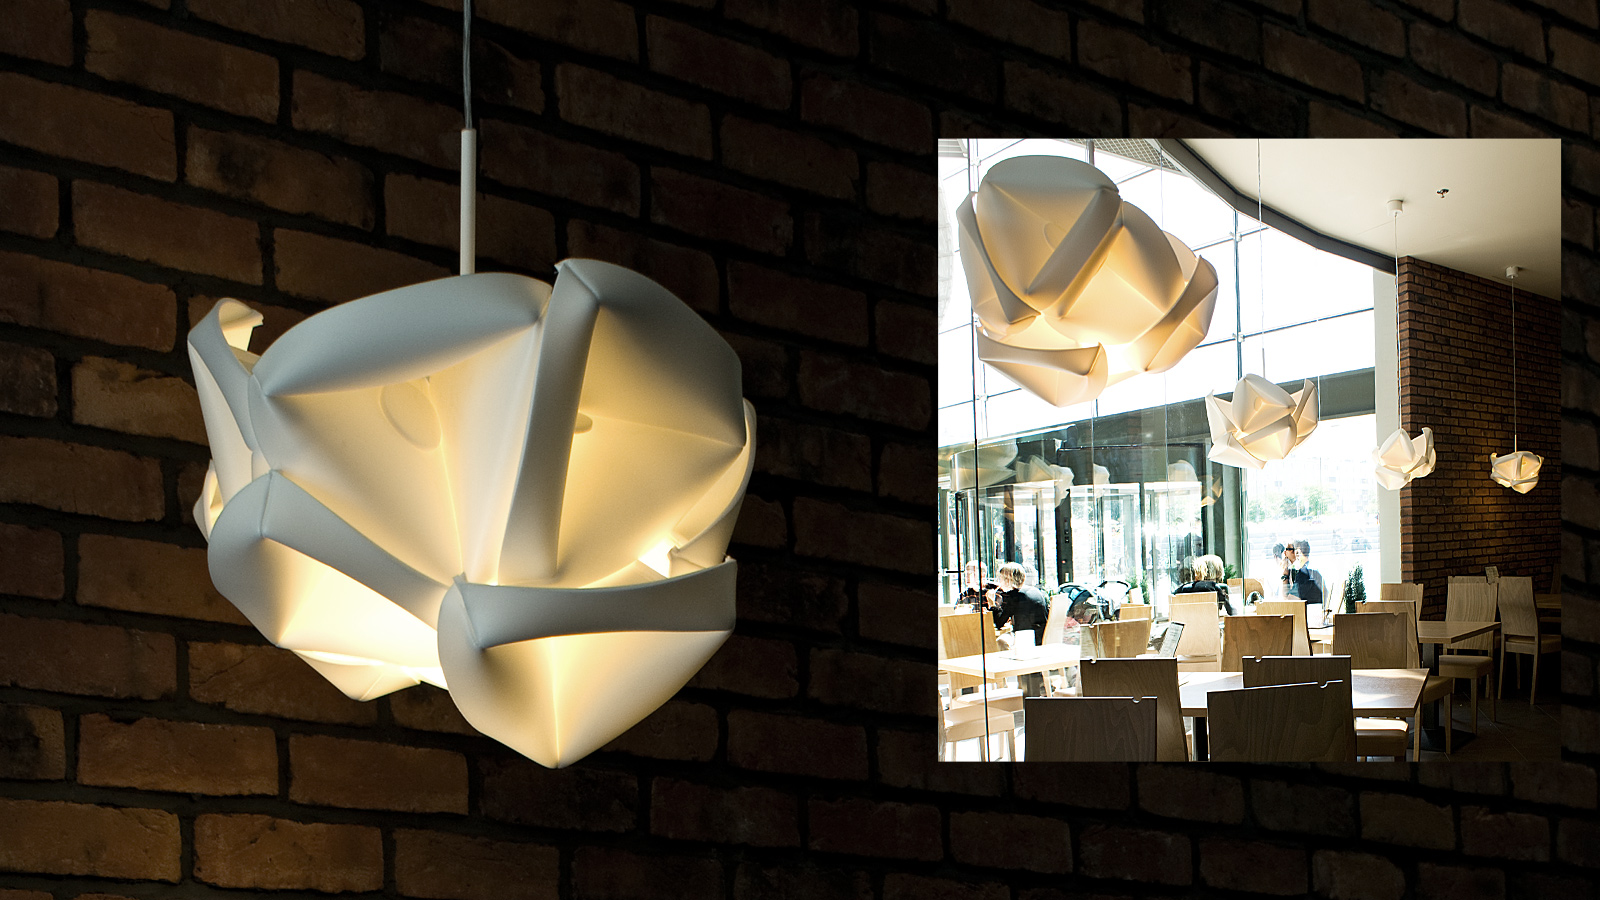 RENOVATION lamps in the interiors of KFC restaurant in «Cuprum Arena» mall, Lubin, Poland